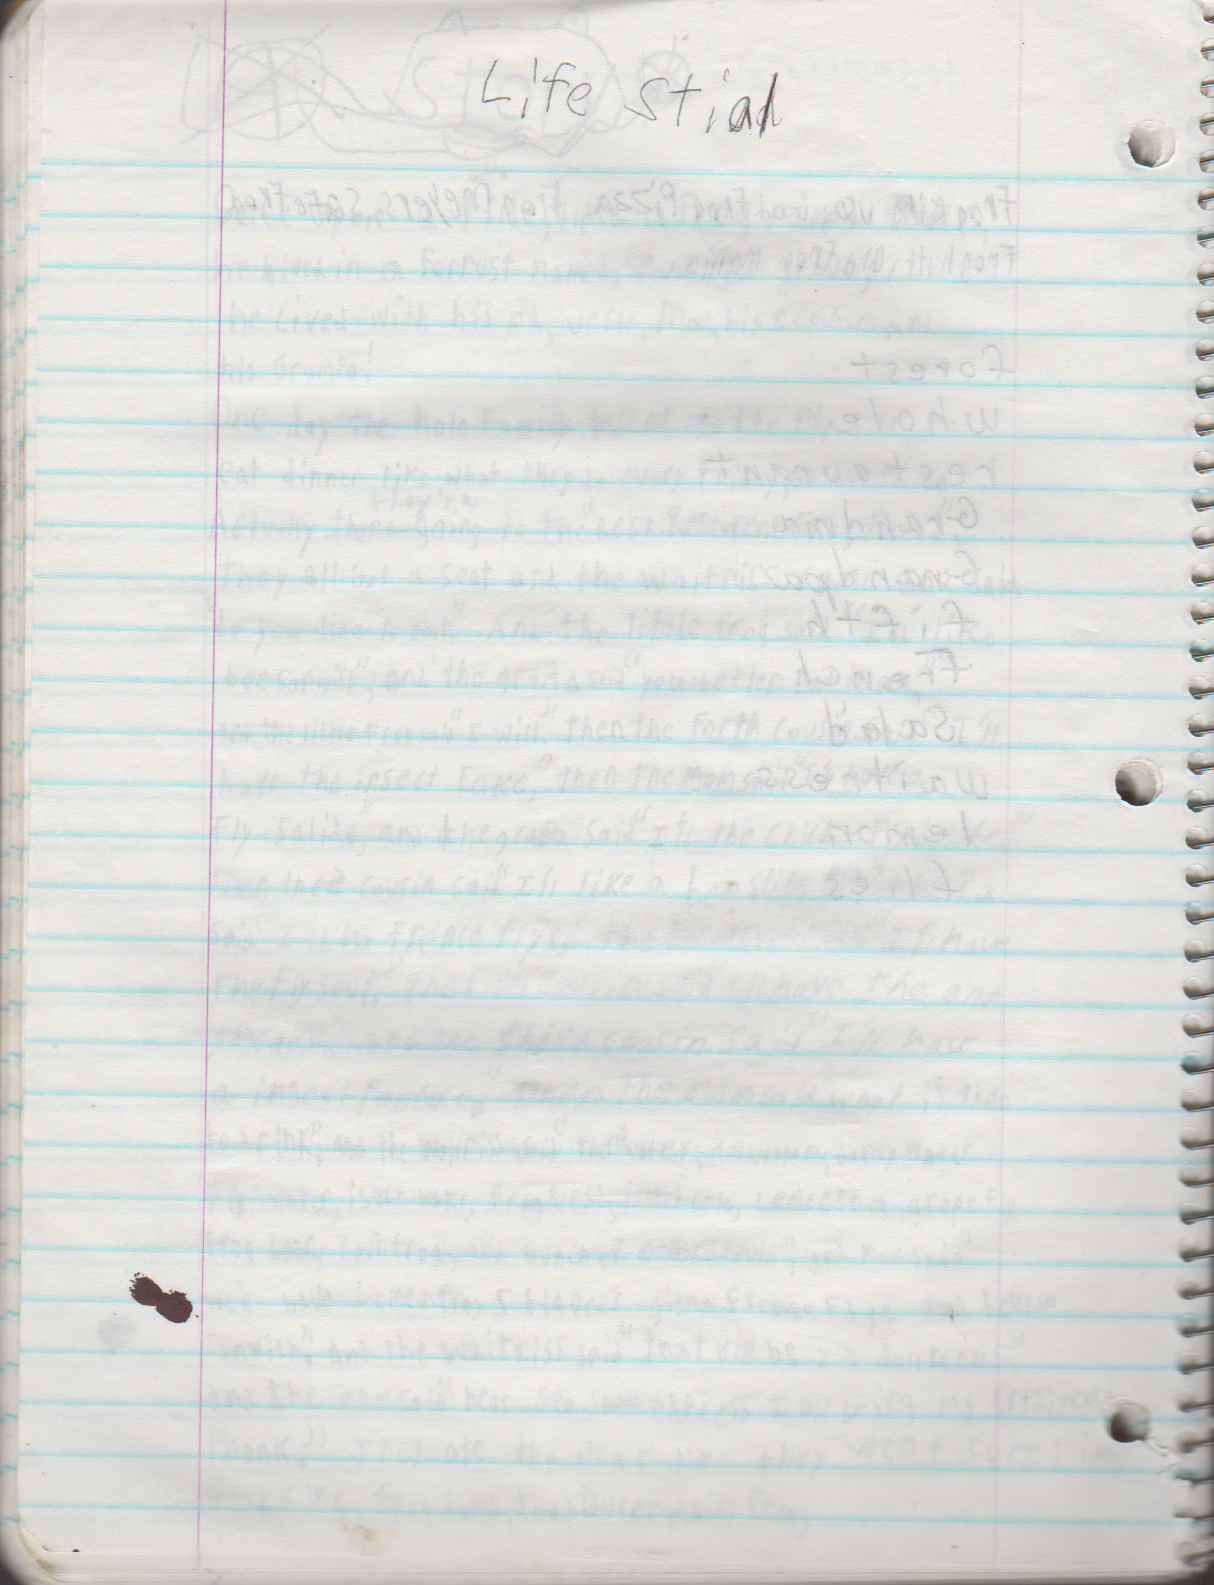 1996-08-18 - Saturday - 11 yr old Joey Arnold's School Book, dates through to 1998 apx, mostly 96, Writings, Drawings, Etc-085.png